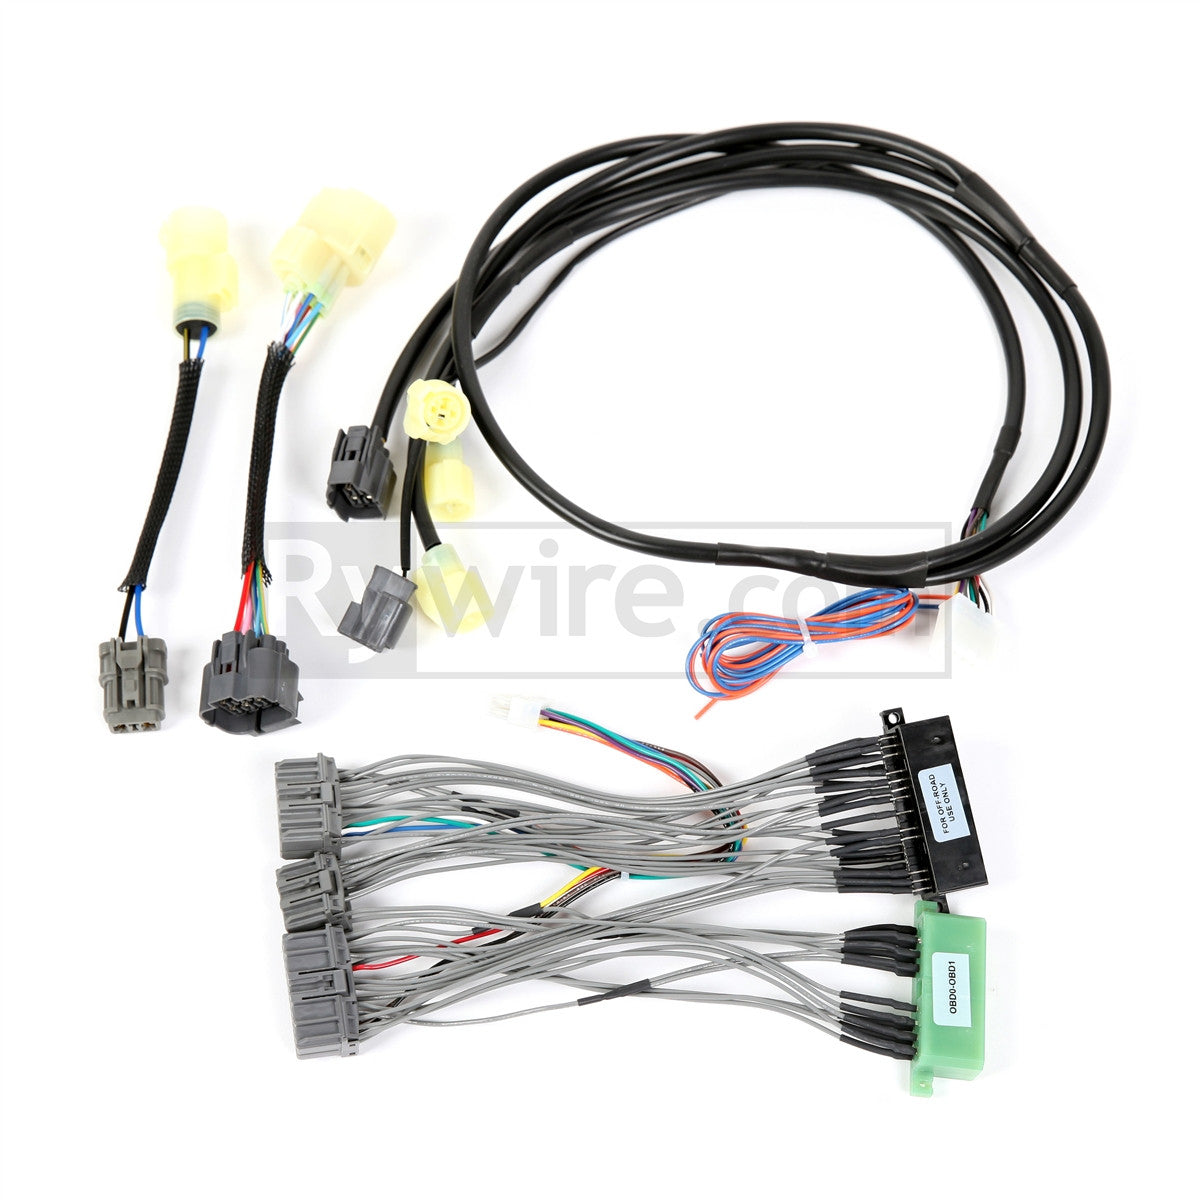 Rywire OBDO [MPFI] to OBD1 Conversion Package